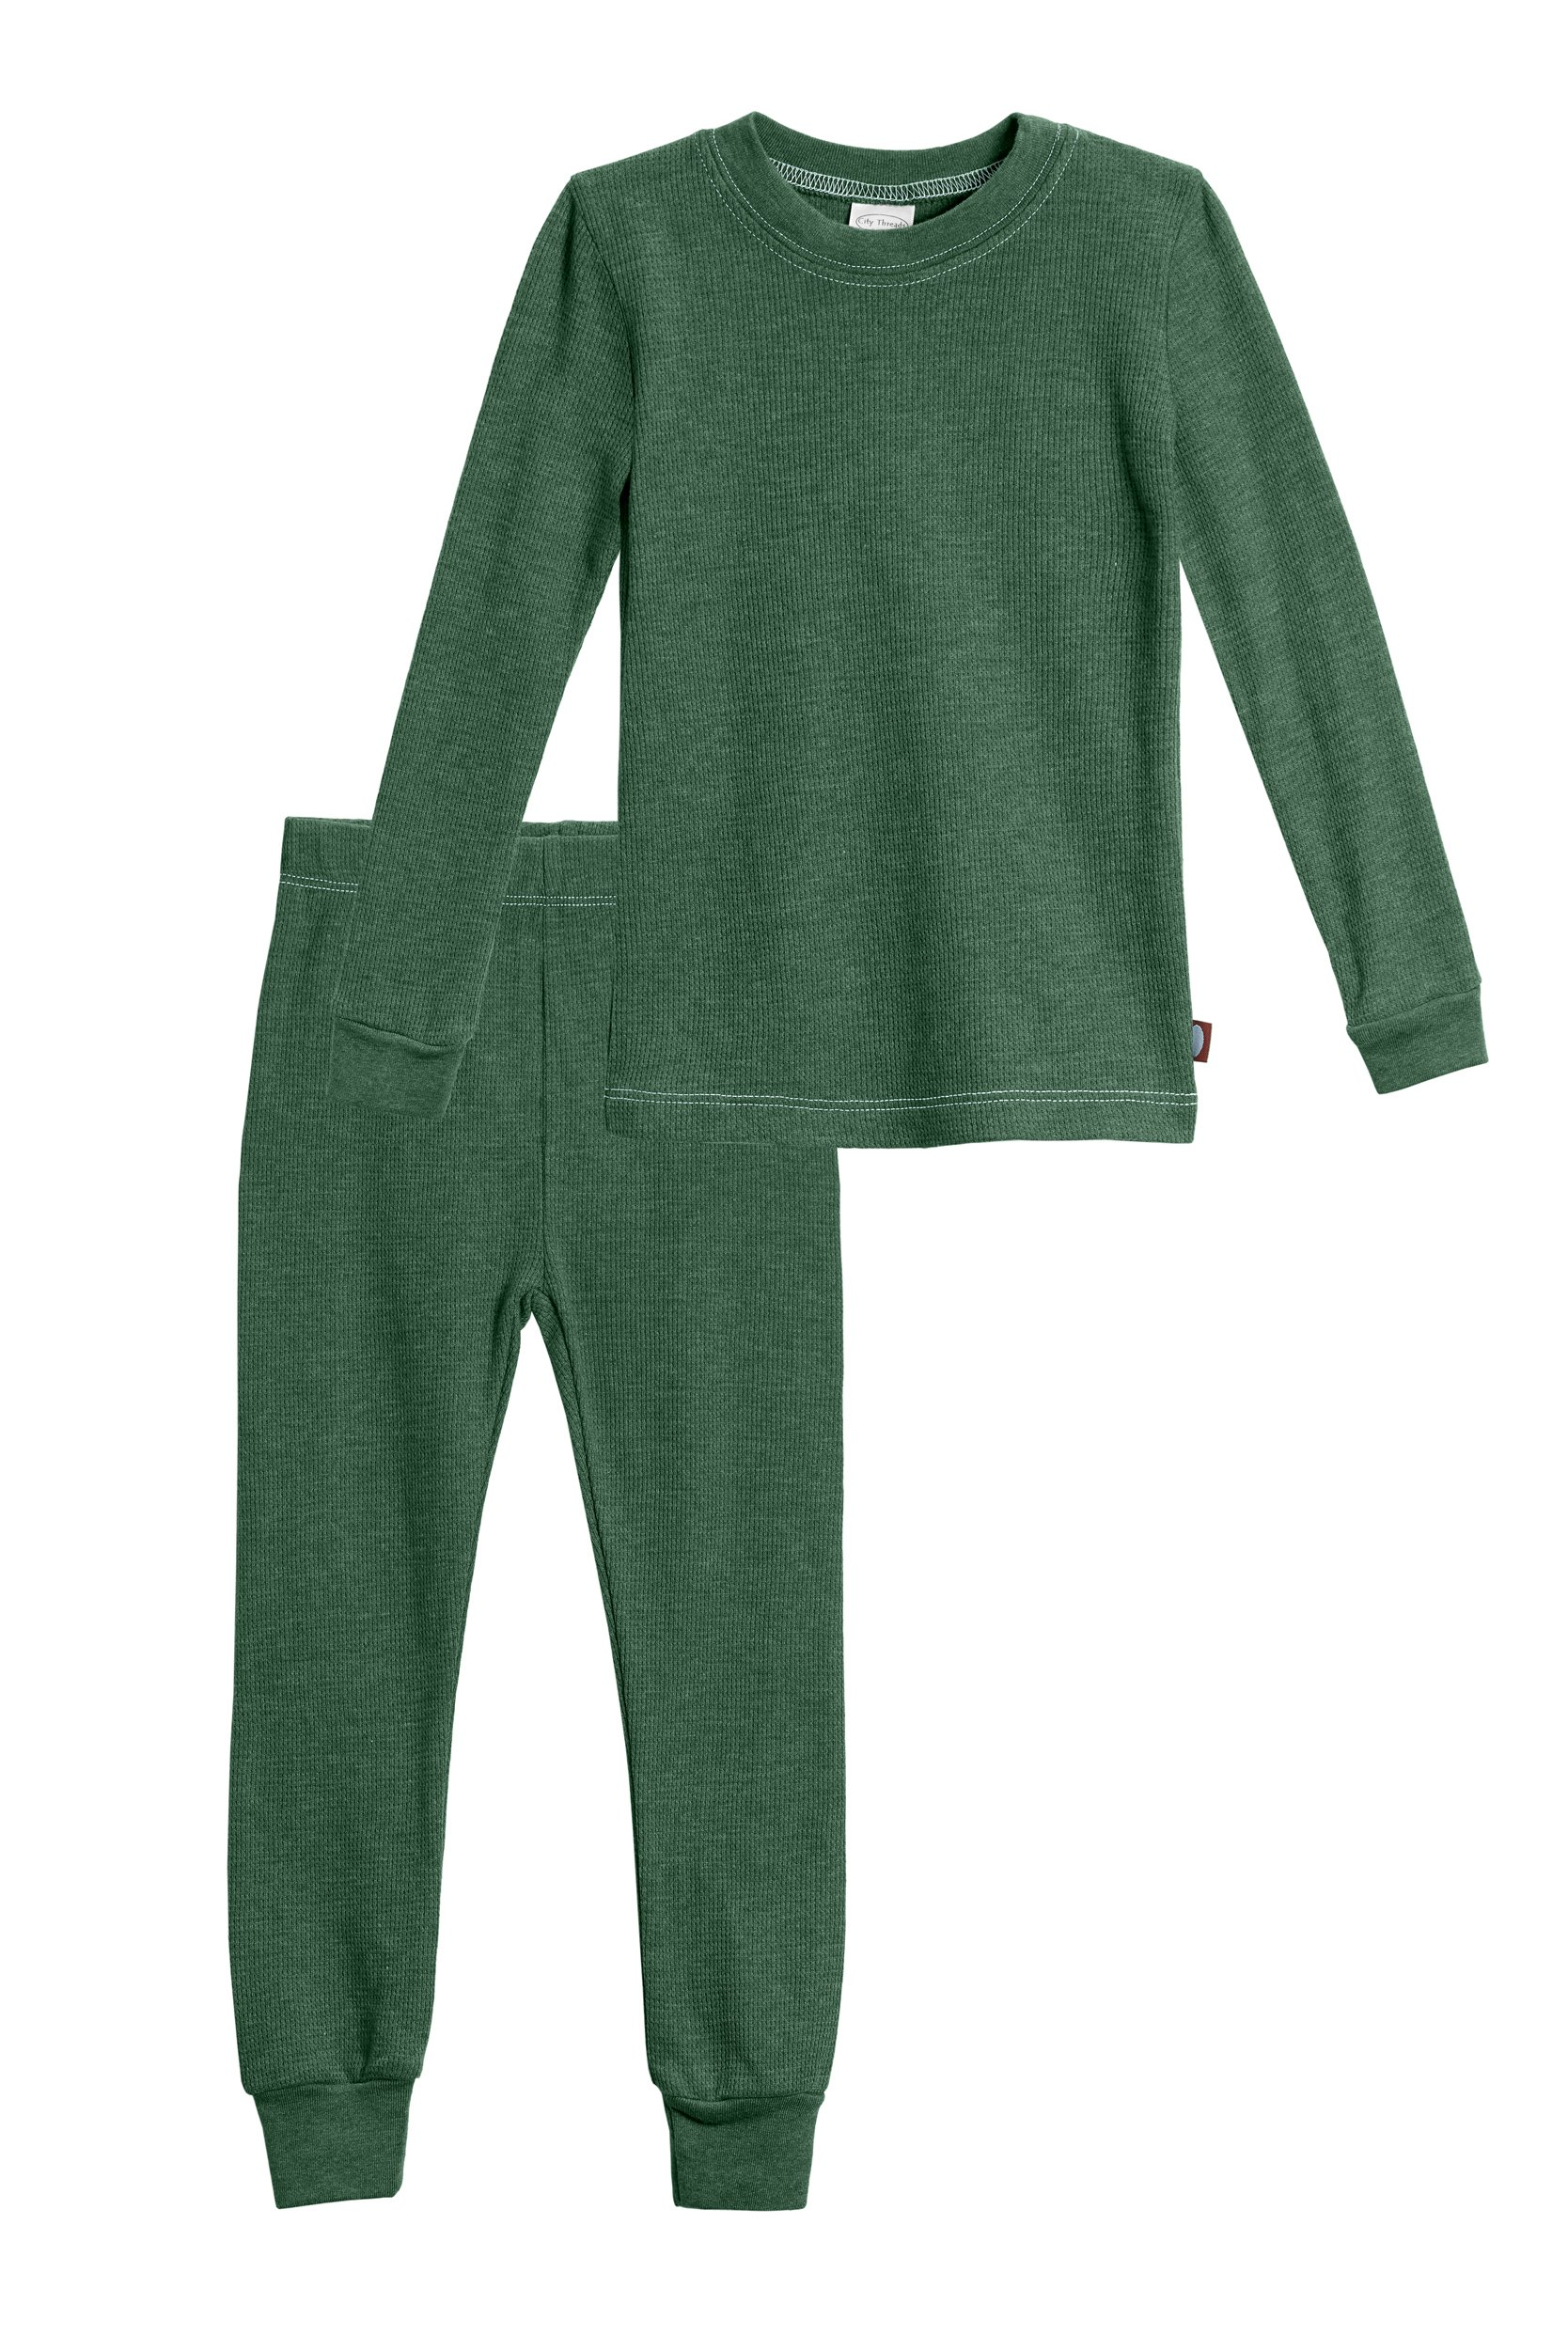 City Threads Big Boys Thermal Underwear Set Perfect For Sensitive Skin SPD Sensory Friendly, Forest Green- 14 by City Threads